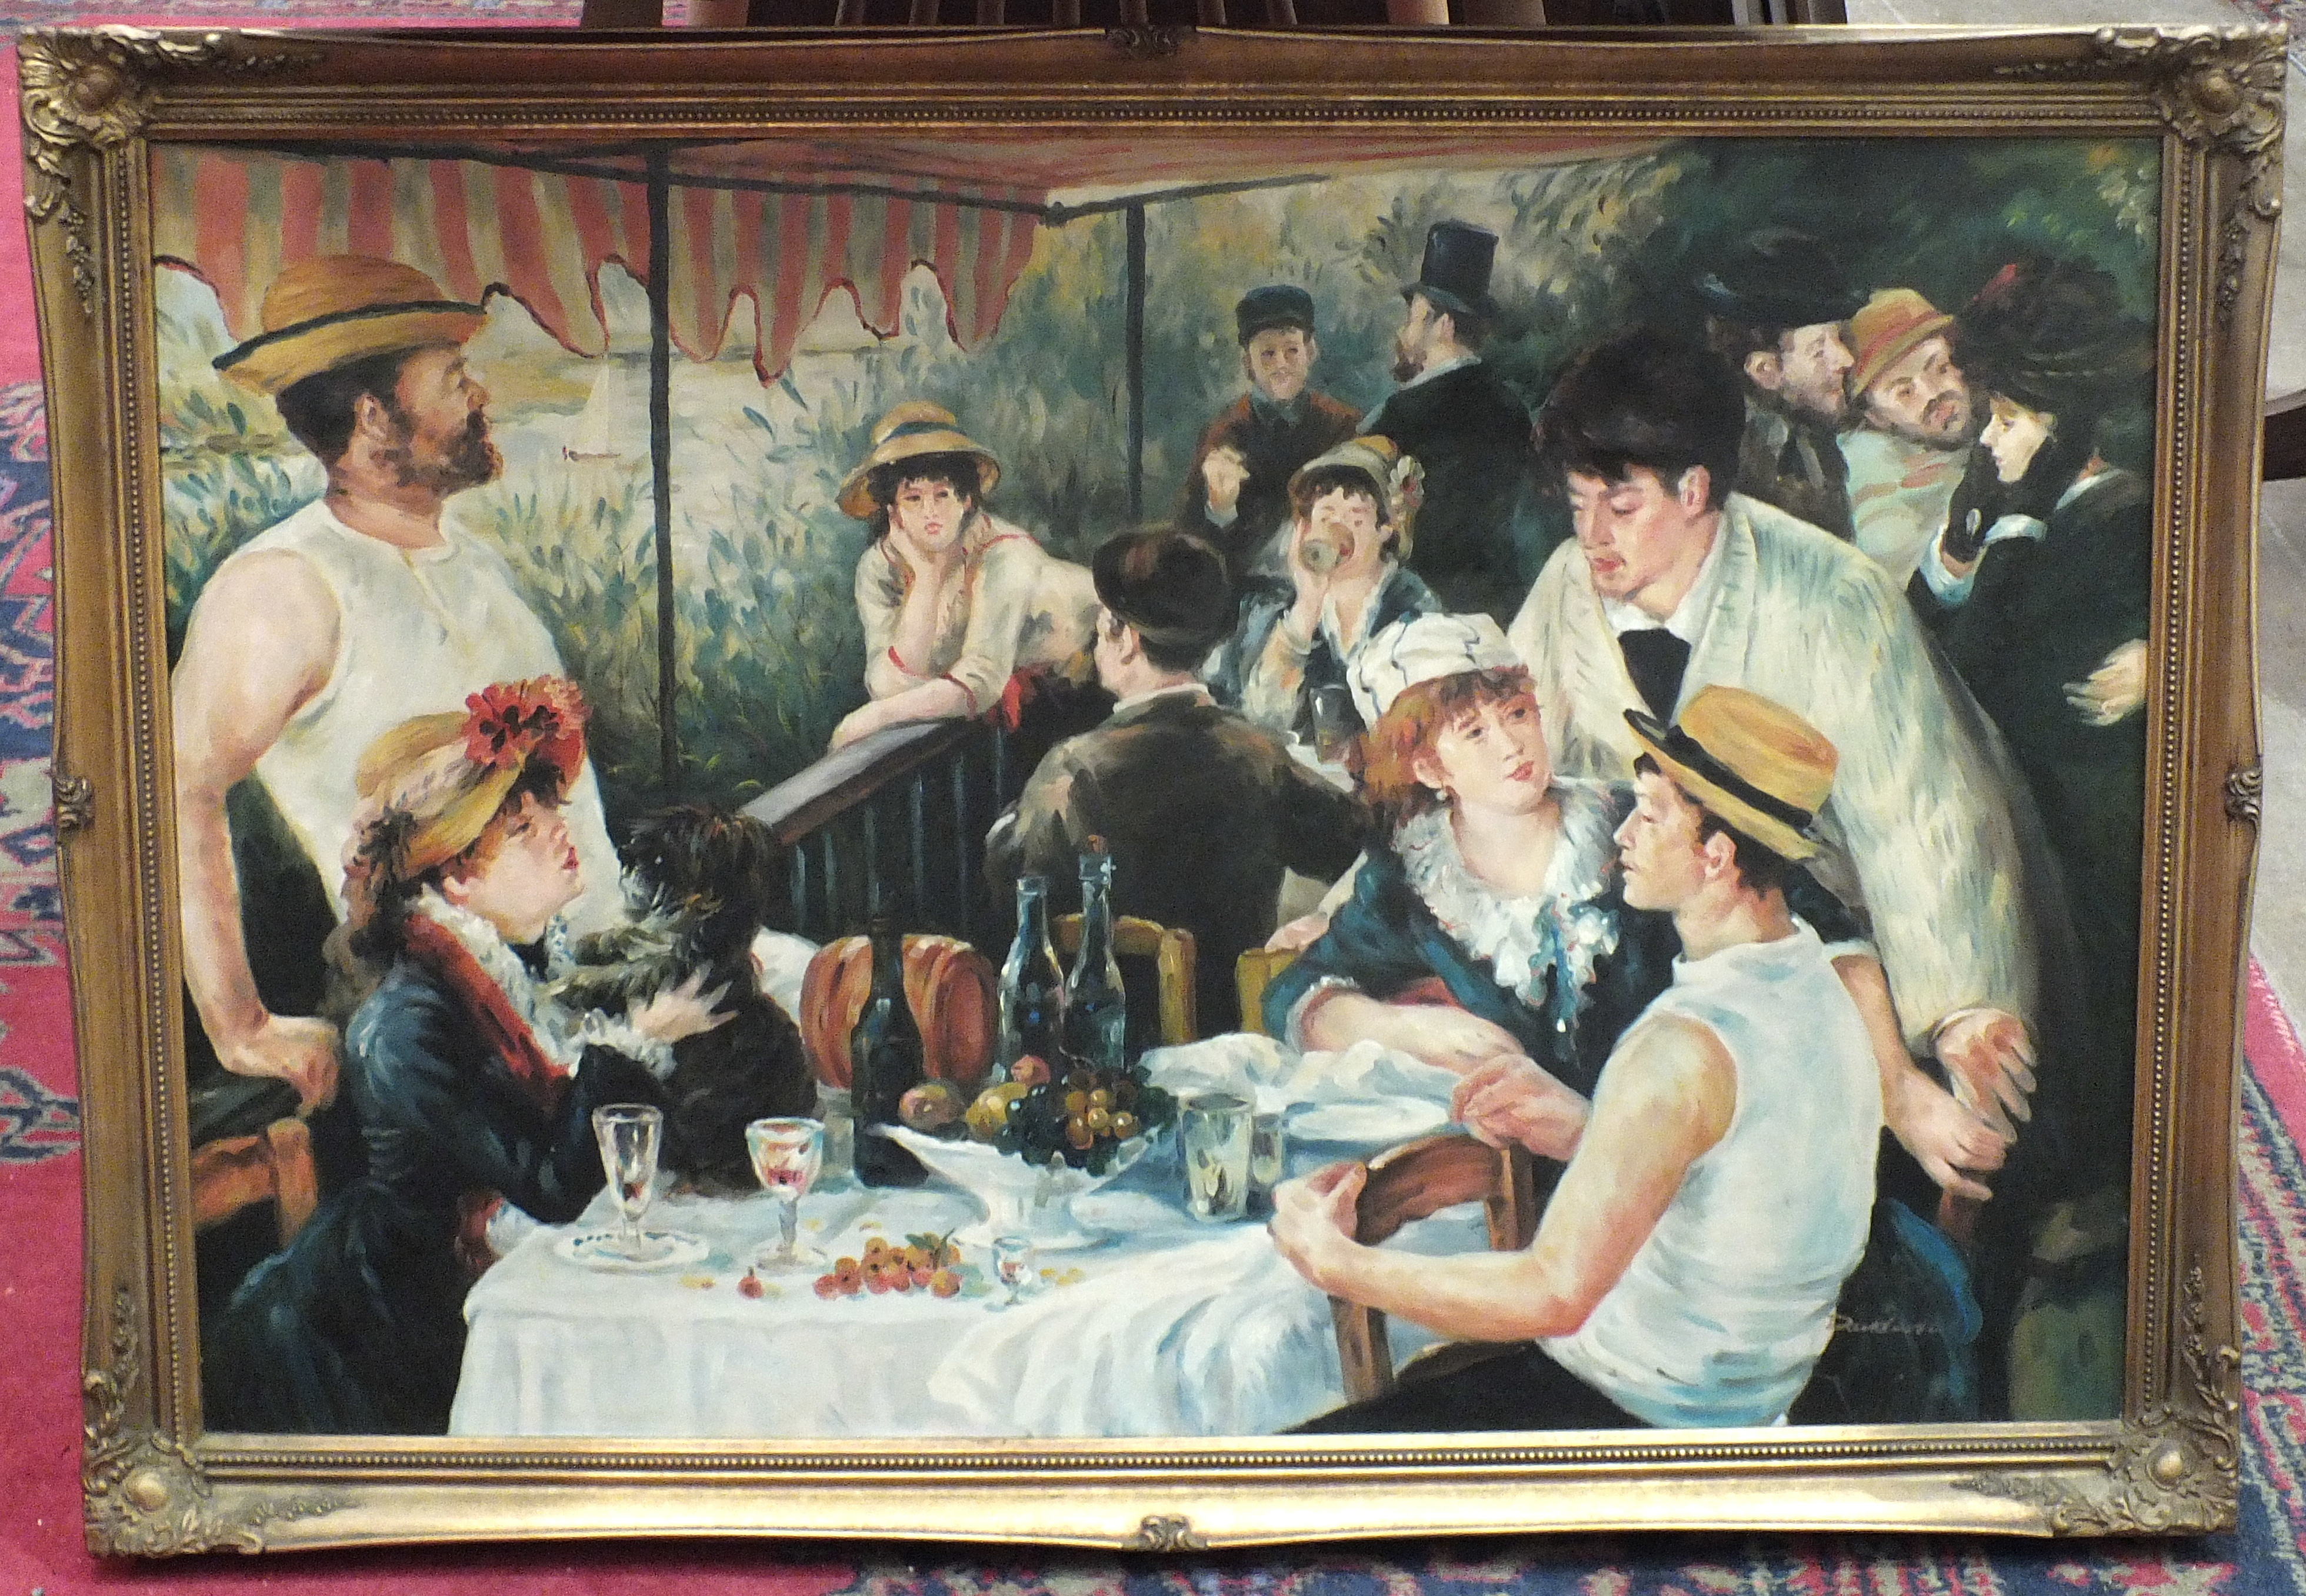 Lot 120 - Davidson, 20th century, after Renoir, 'Luncheon of the Boating Party', oil on canvas, signed, etc.